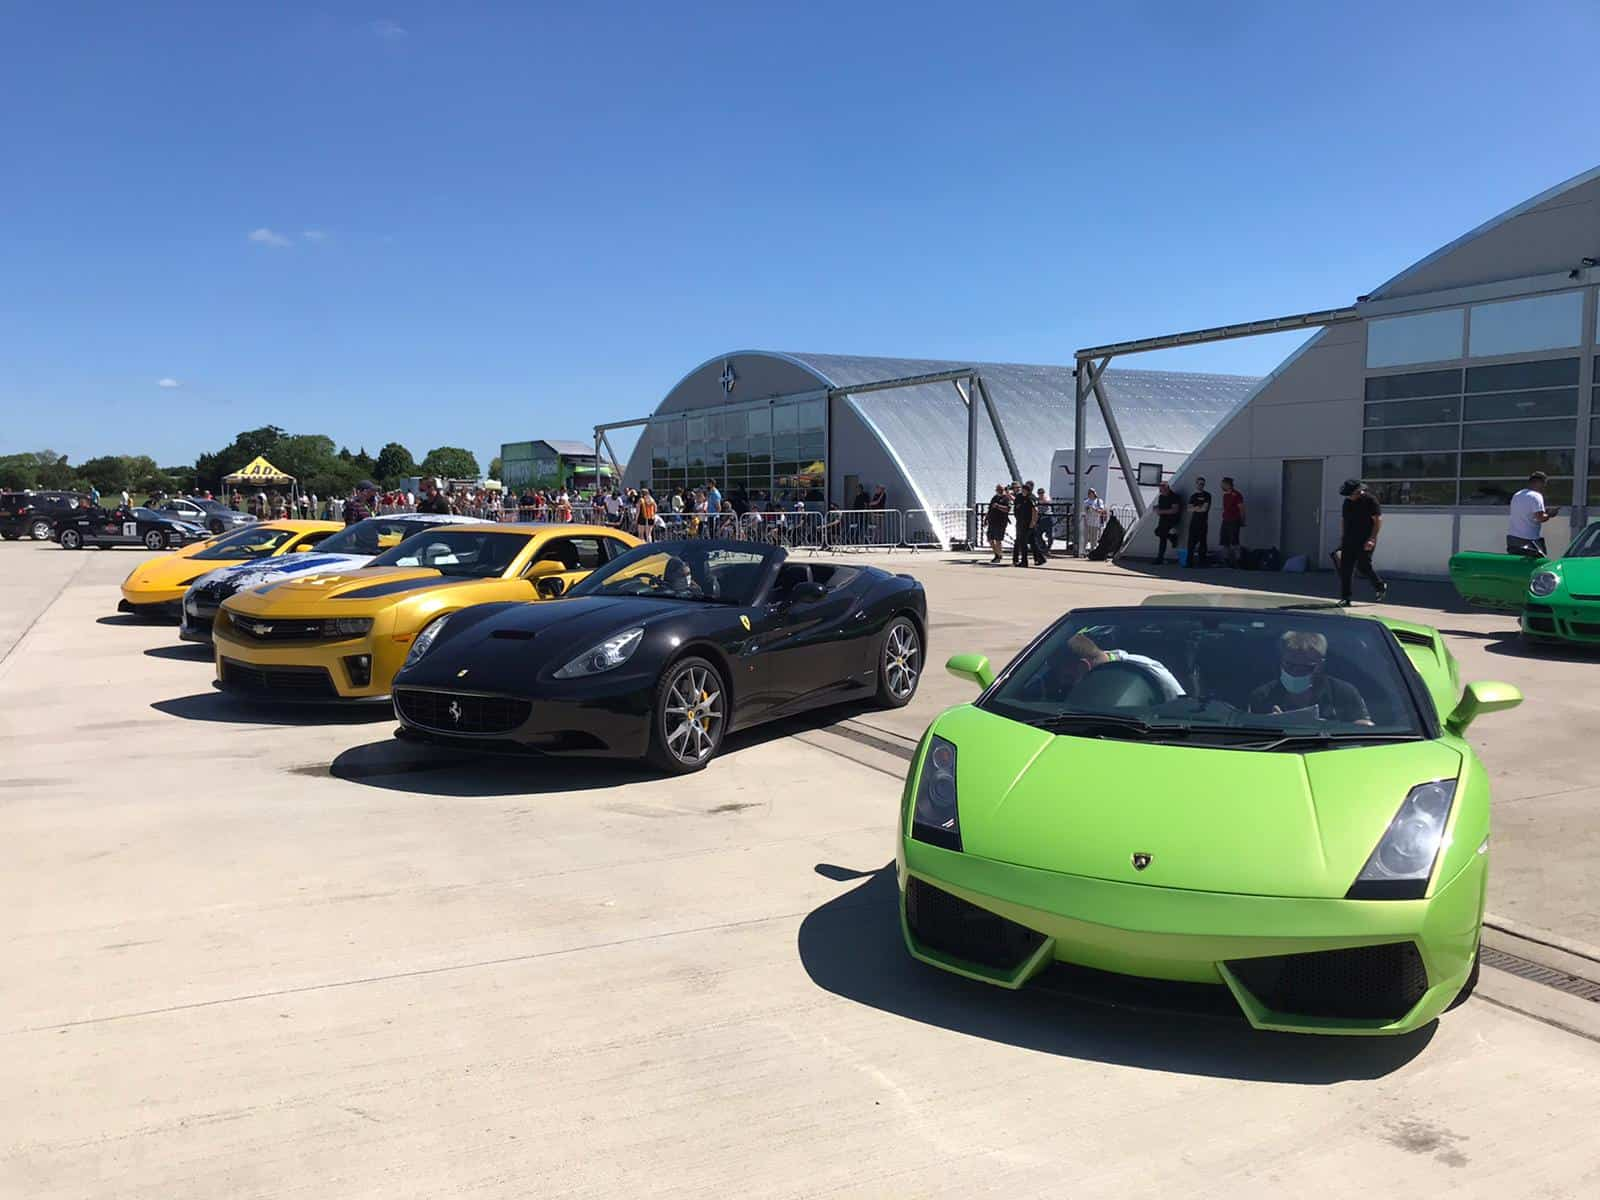 Sywell Aerodrome track day event May 2021